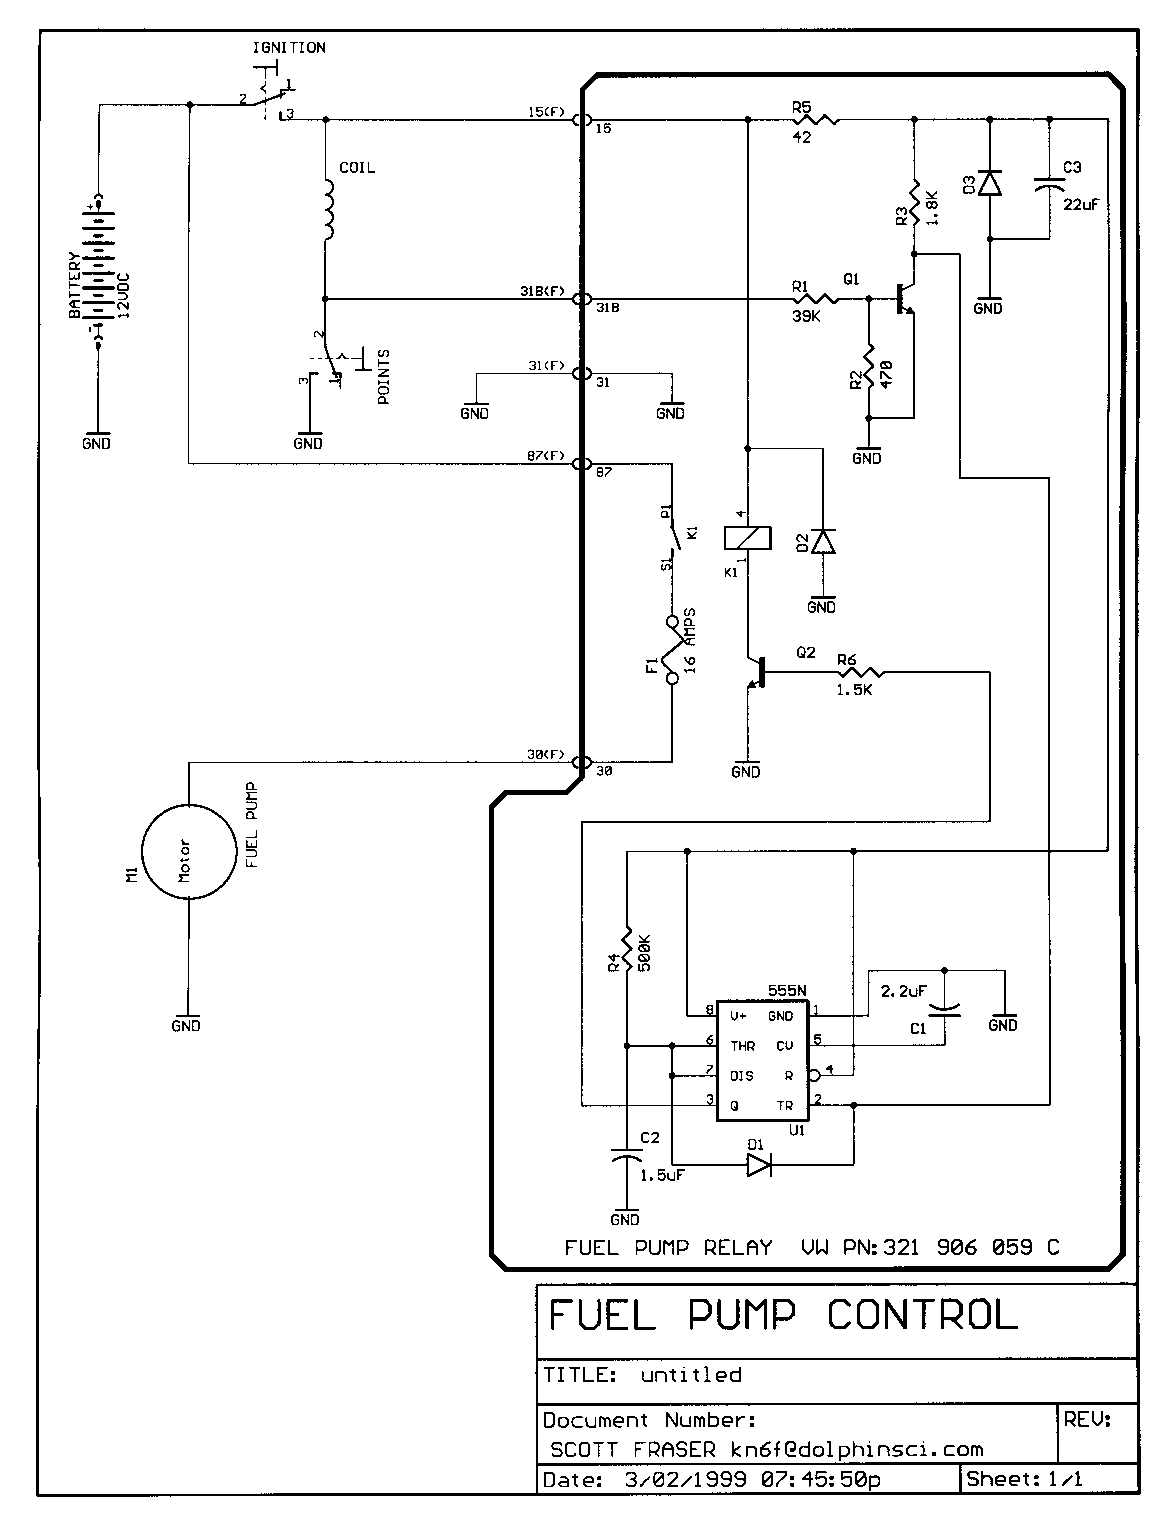 VWfuelPumpRelay thesamba com bay window bus view topic fuel pump wiring fuel pump wiring diagram at suagrazia.org